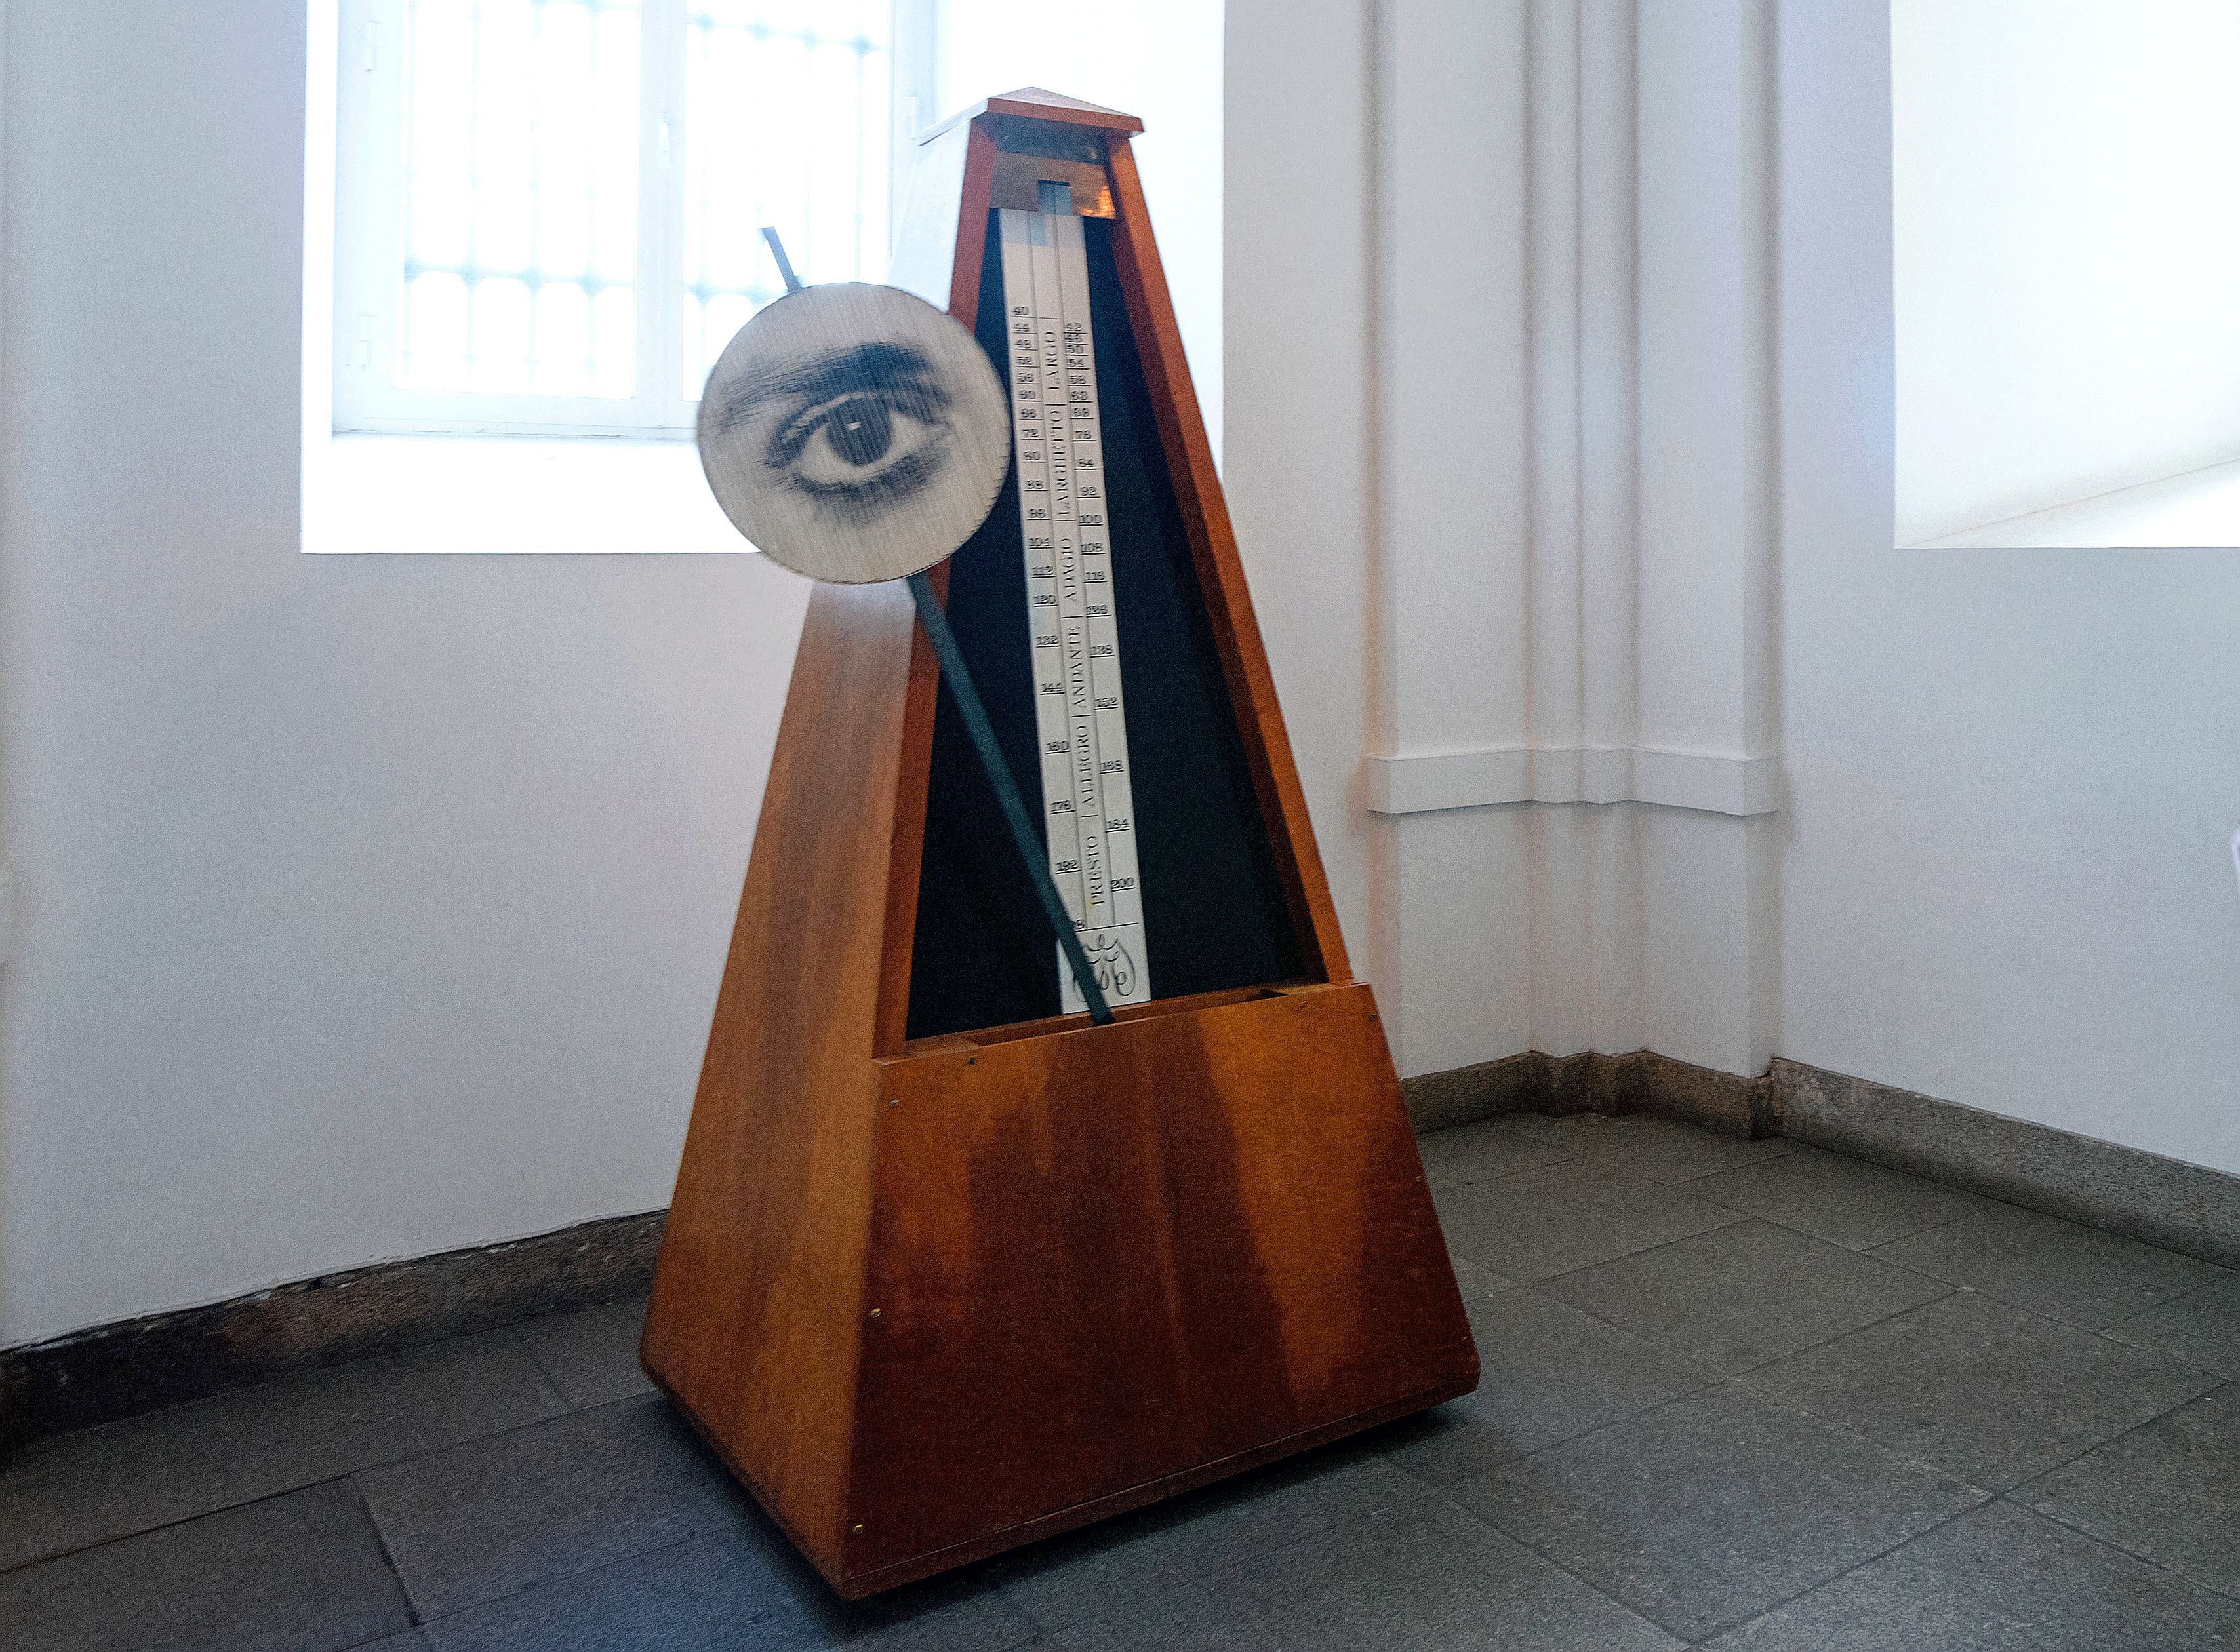 Metronome with a drawing of an eye attached